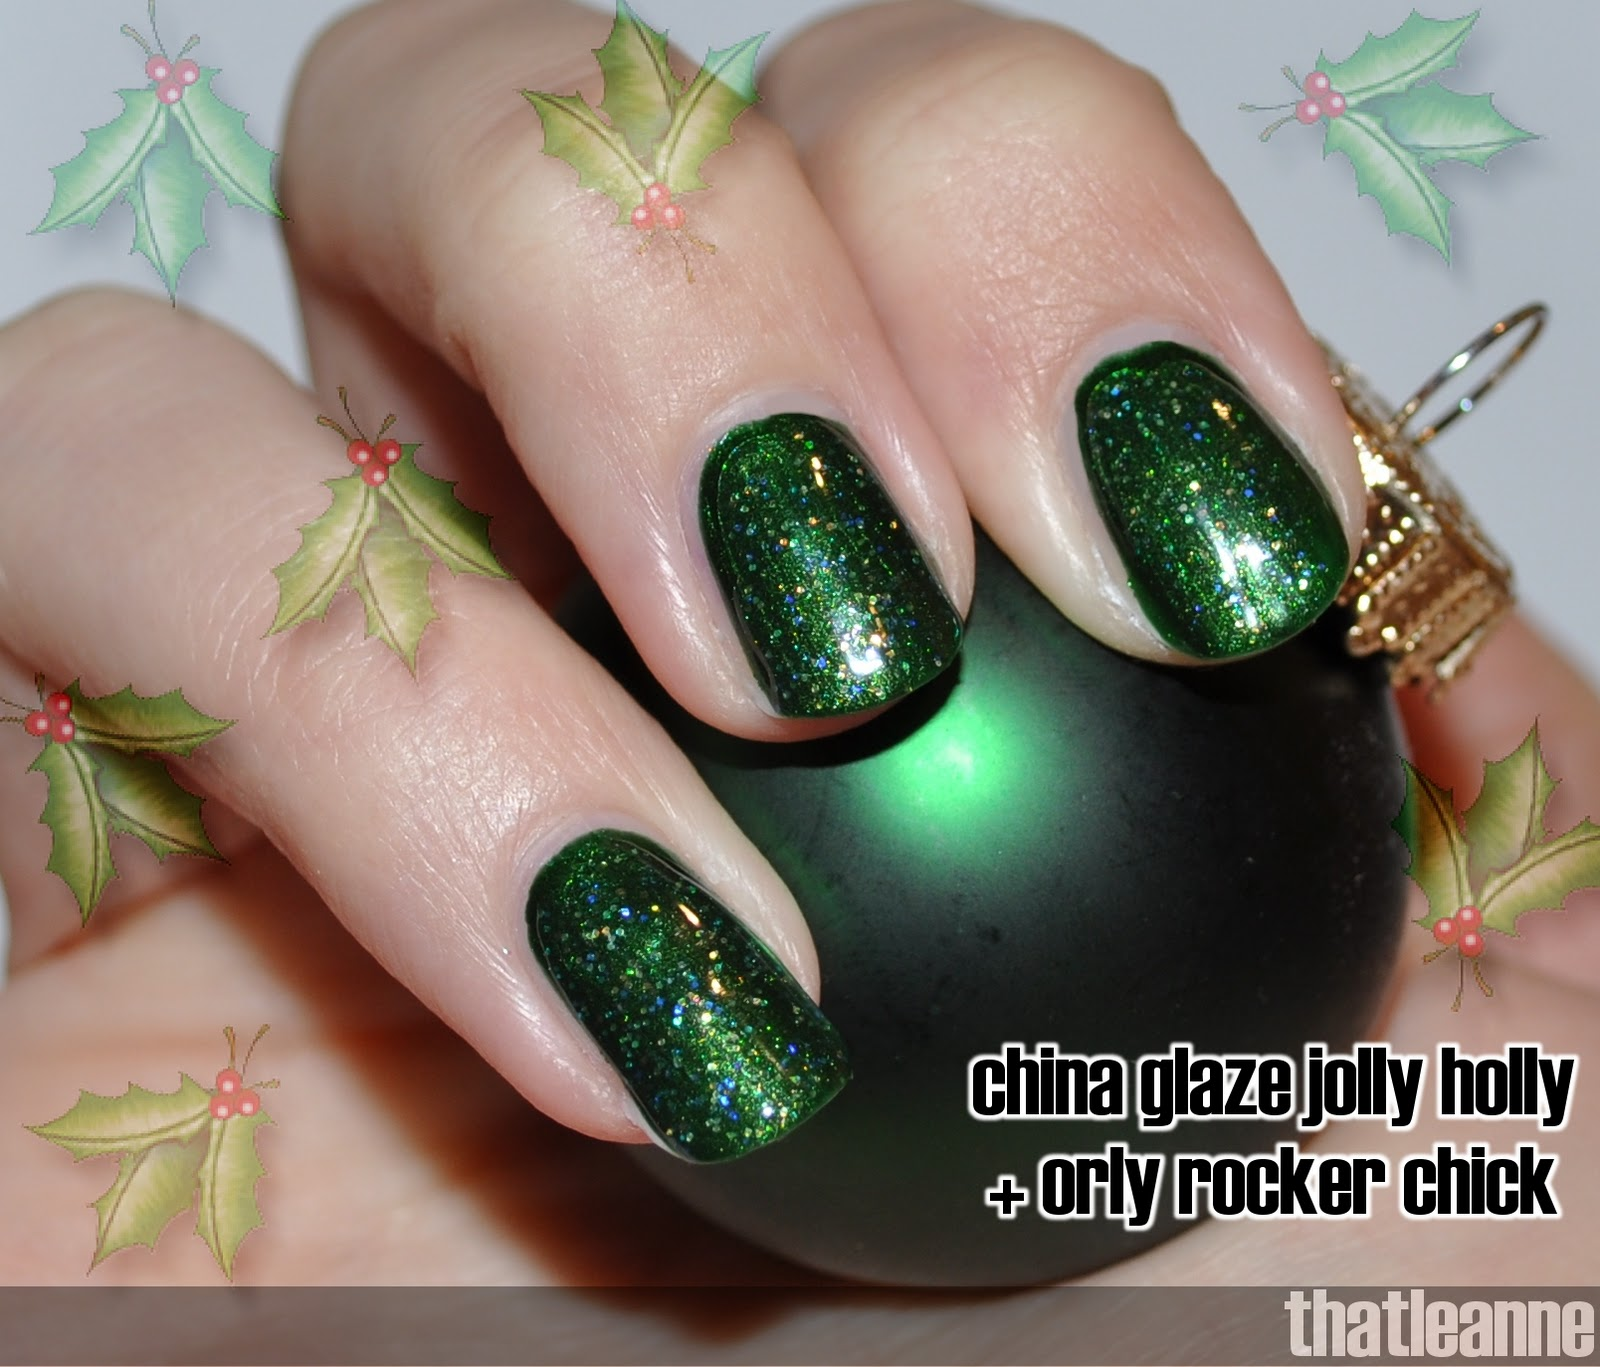 thatleanne: Day 23 of the Nail Polish Advent Calendar: Holly Toledo!